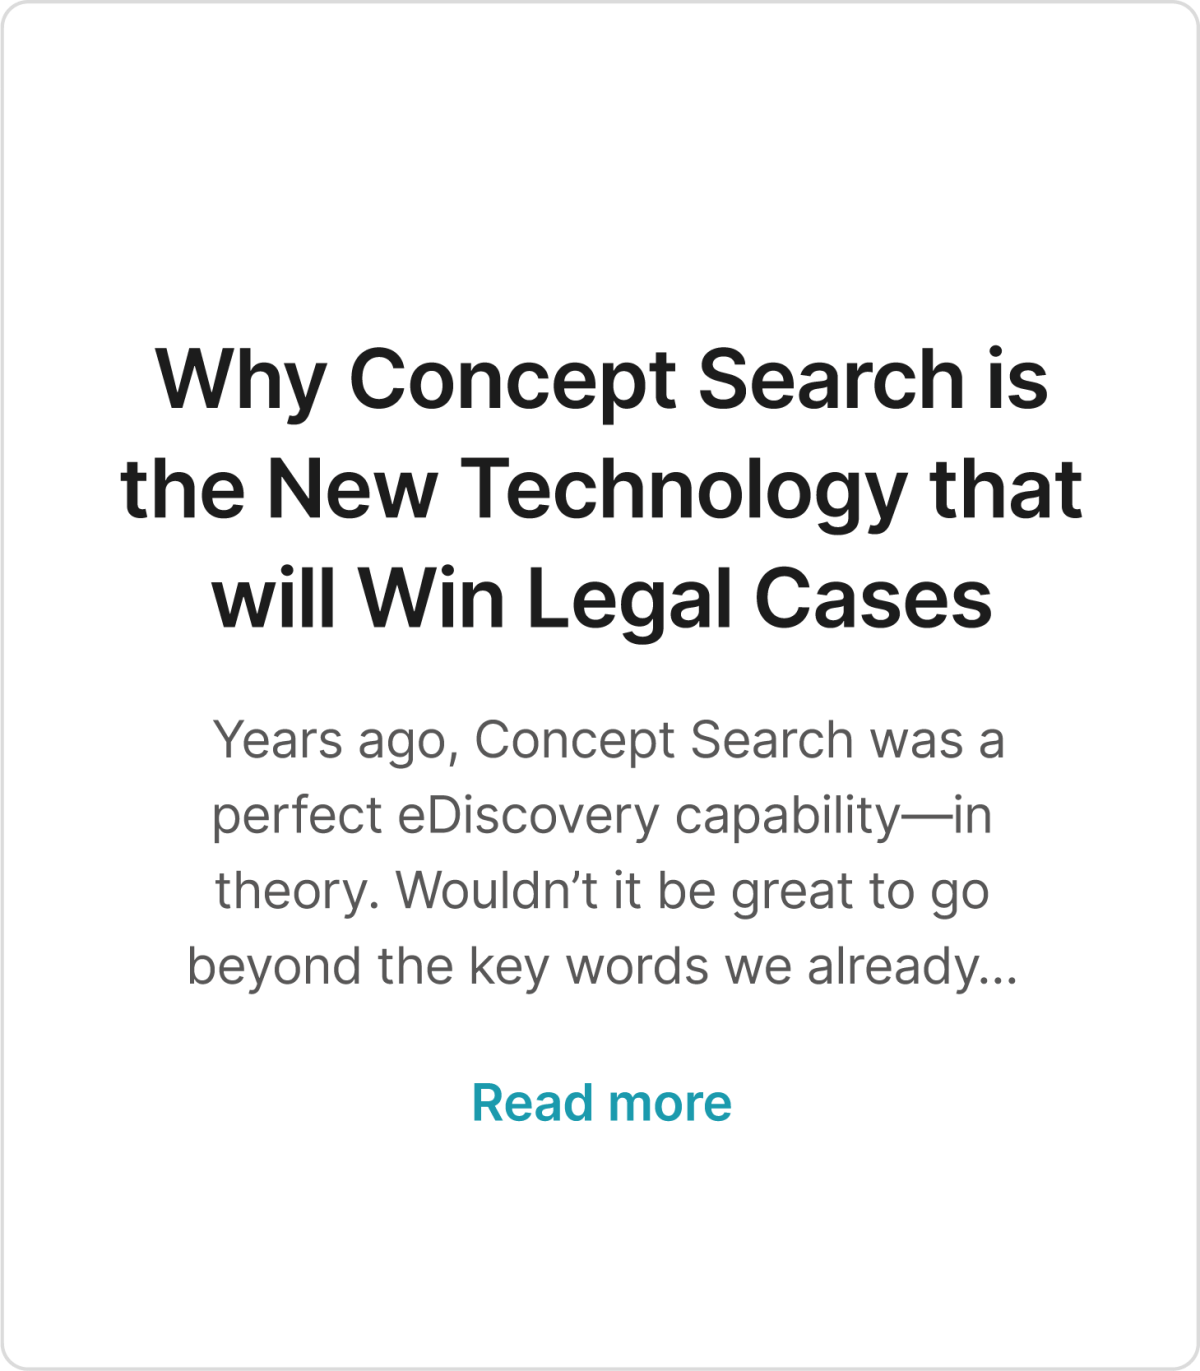 WhyConceptSearch